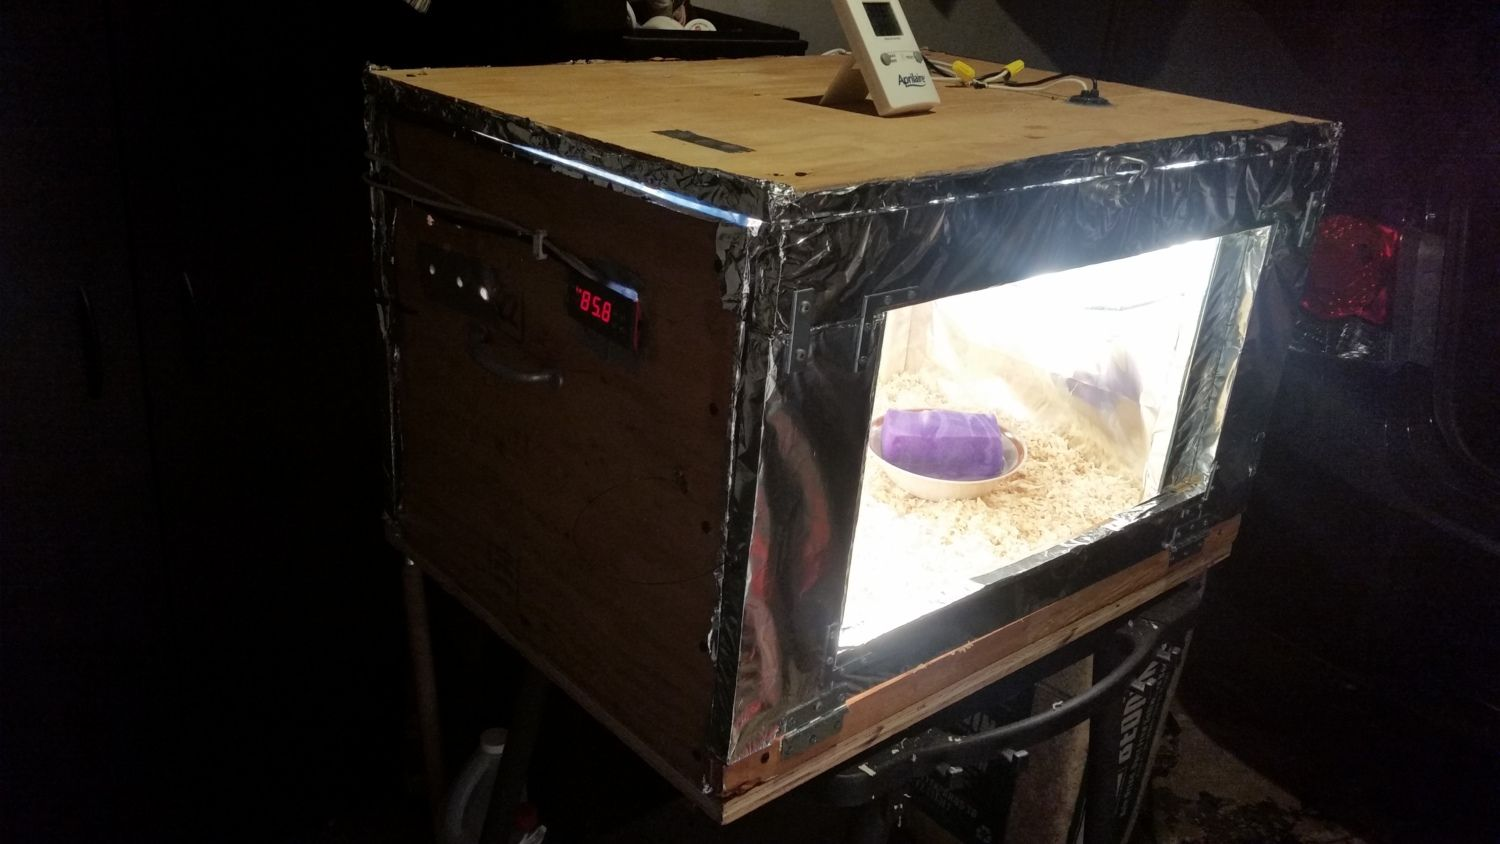 Incubator built in a weekend